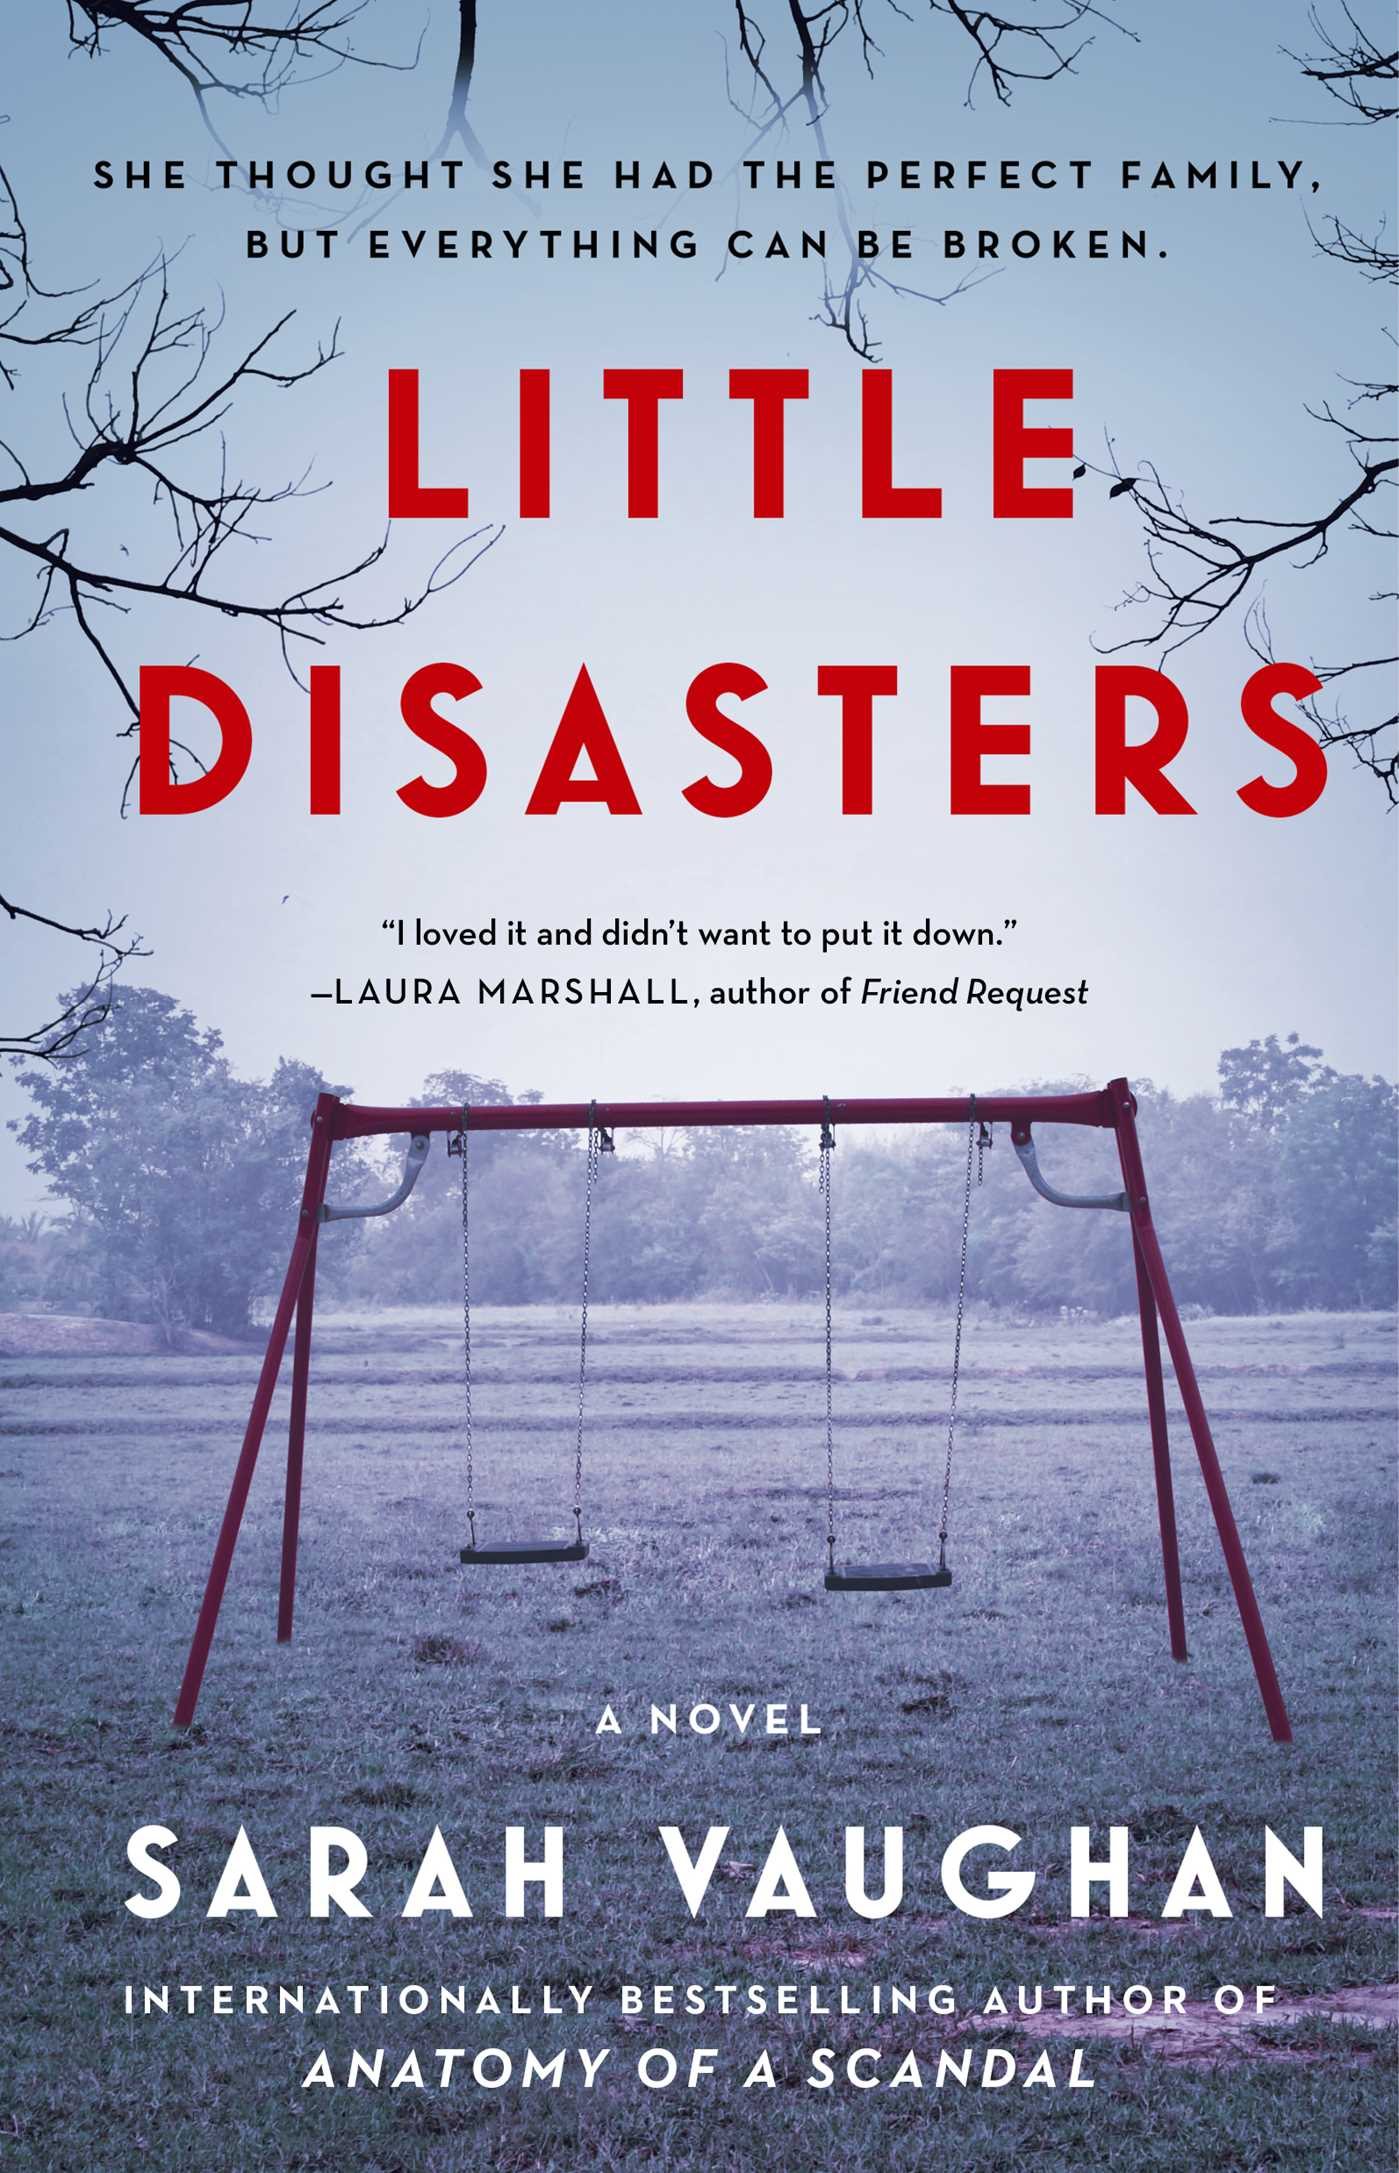 Little Disasters: A Novel by Sarah Vaughan